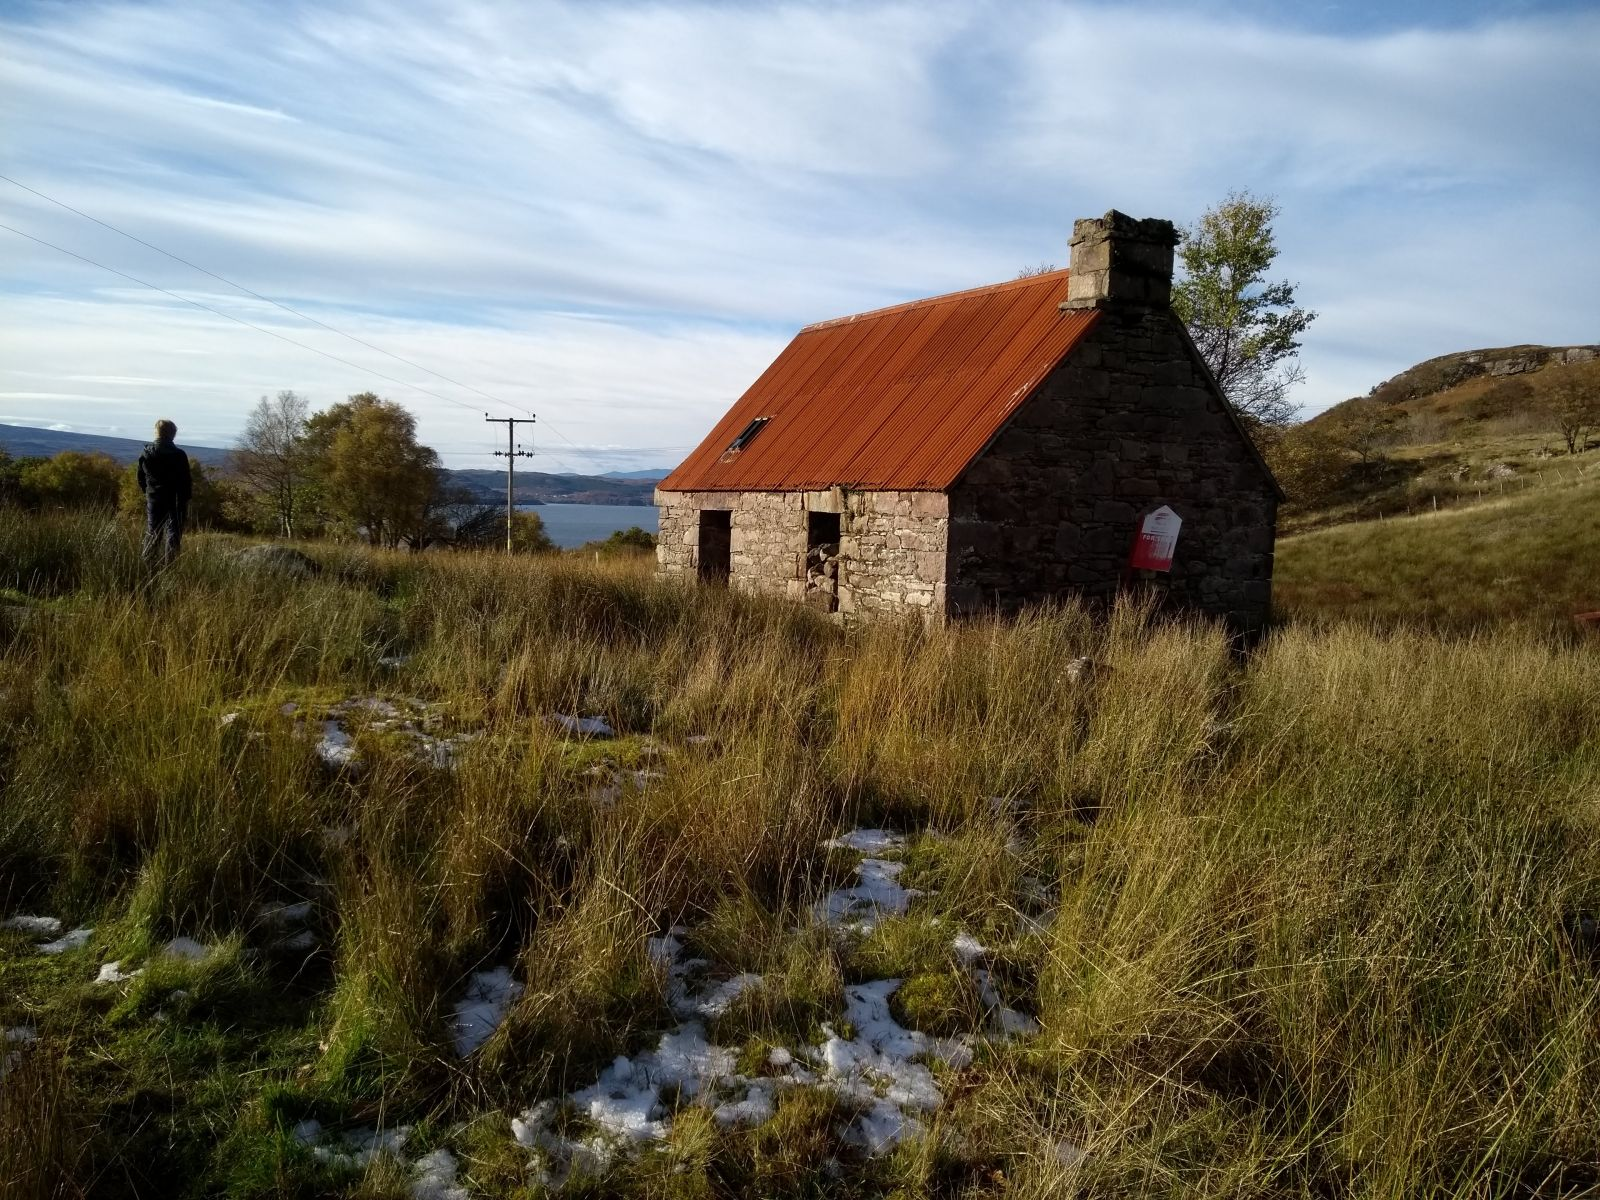 Old building in the highlands, tall grass, man on hill